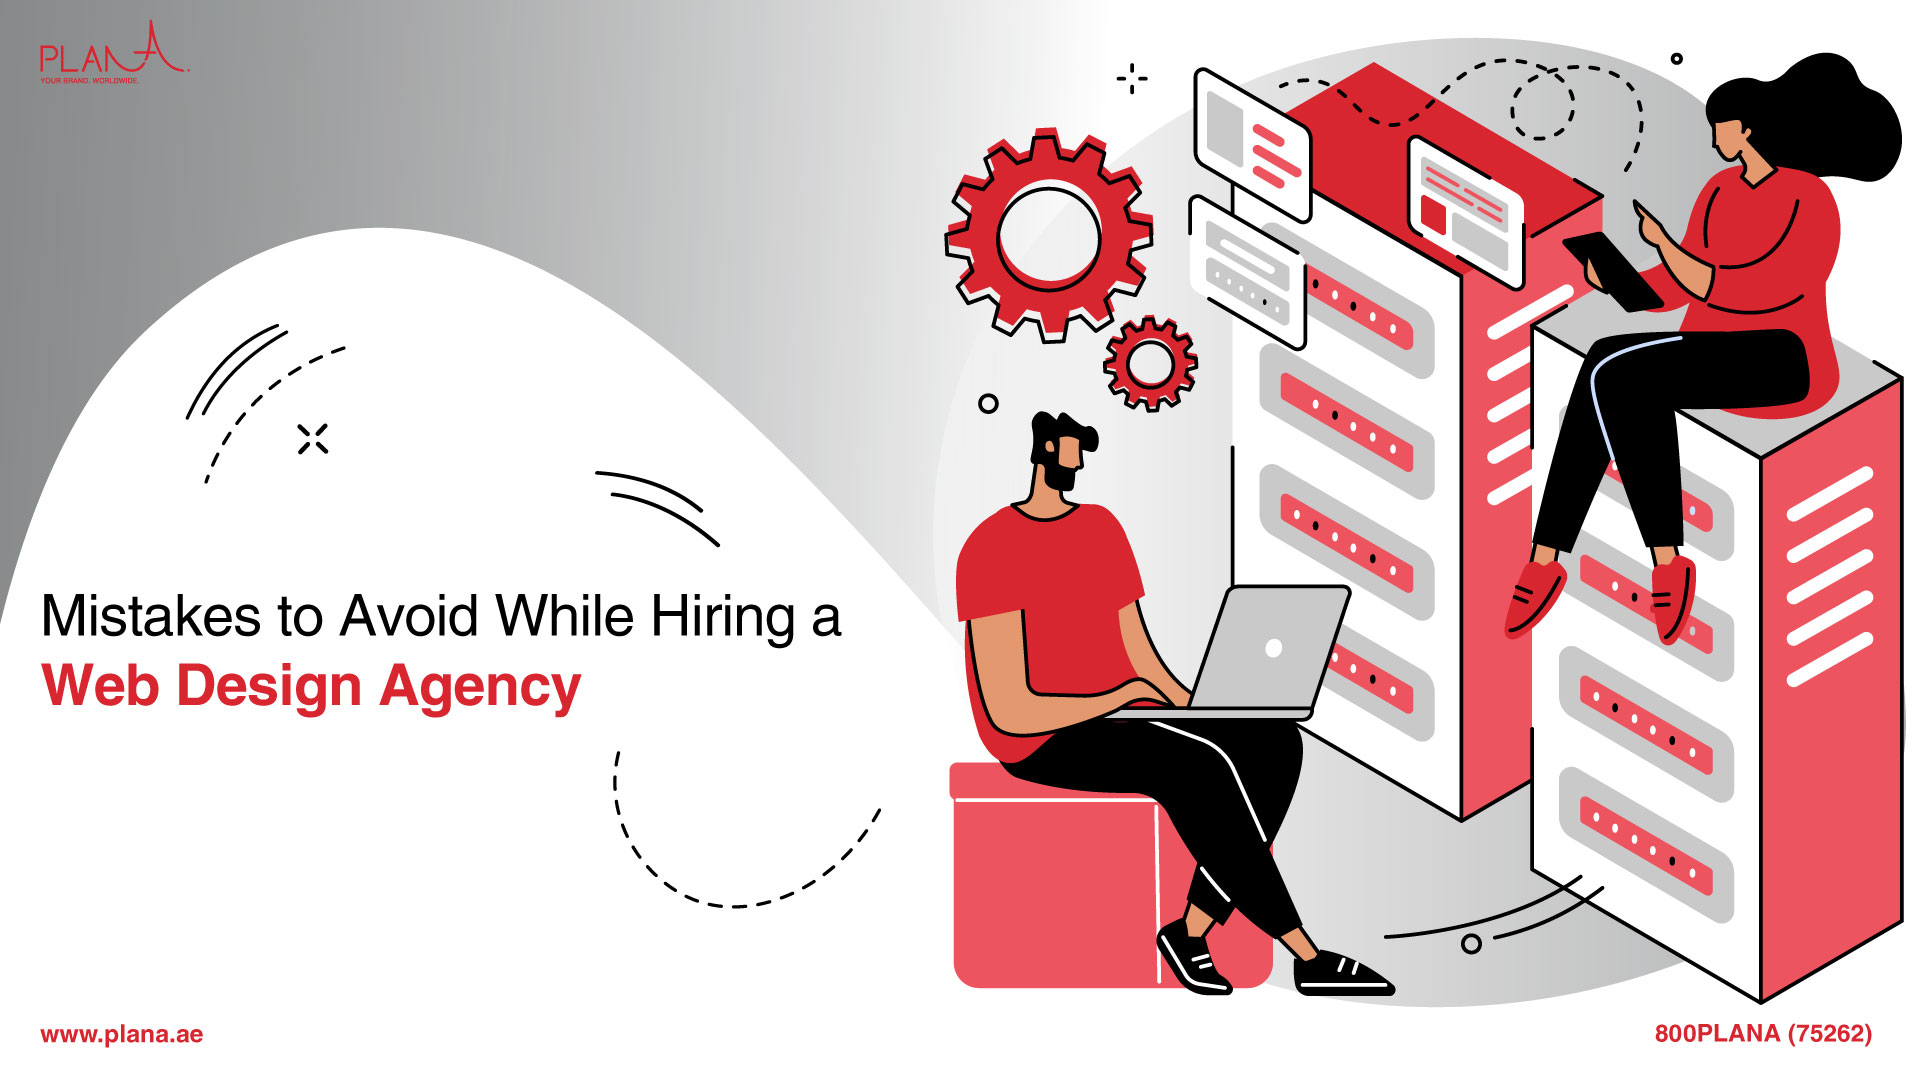 Mistakes to Avoid While Hiring a Web Design Agency